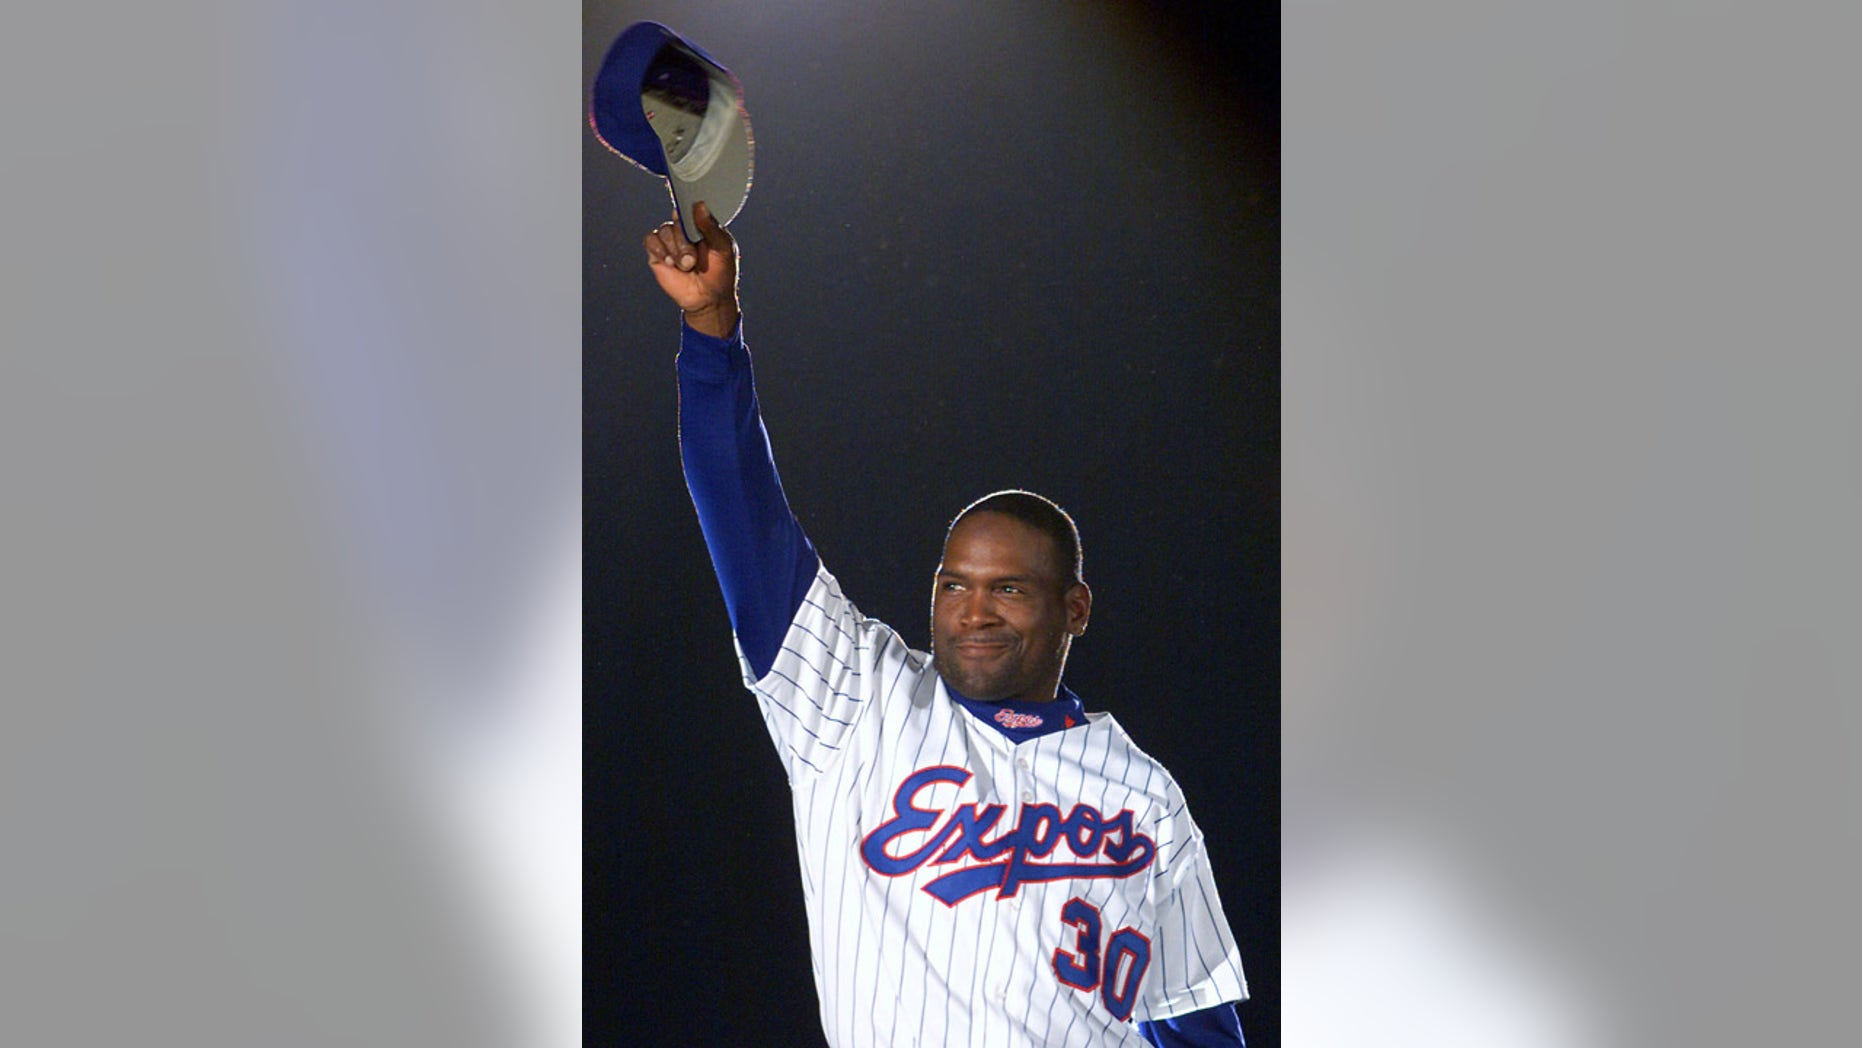 April 6, 2001: Tim Raines acknowledges applause from fans as he is presented before the Montreal Expos' home opener.